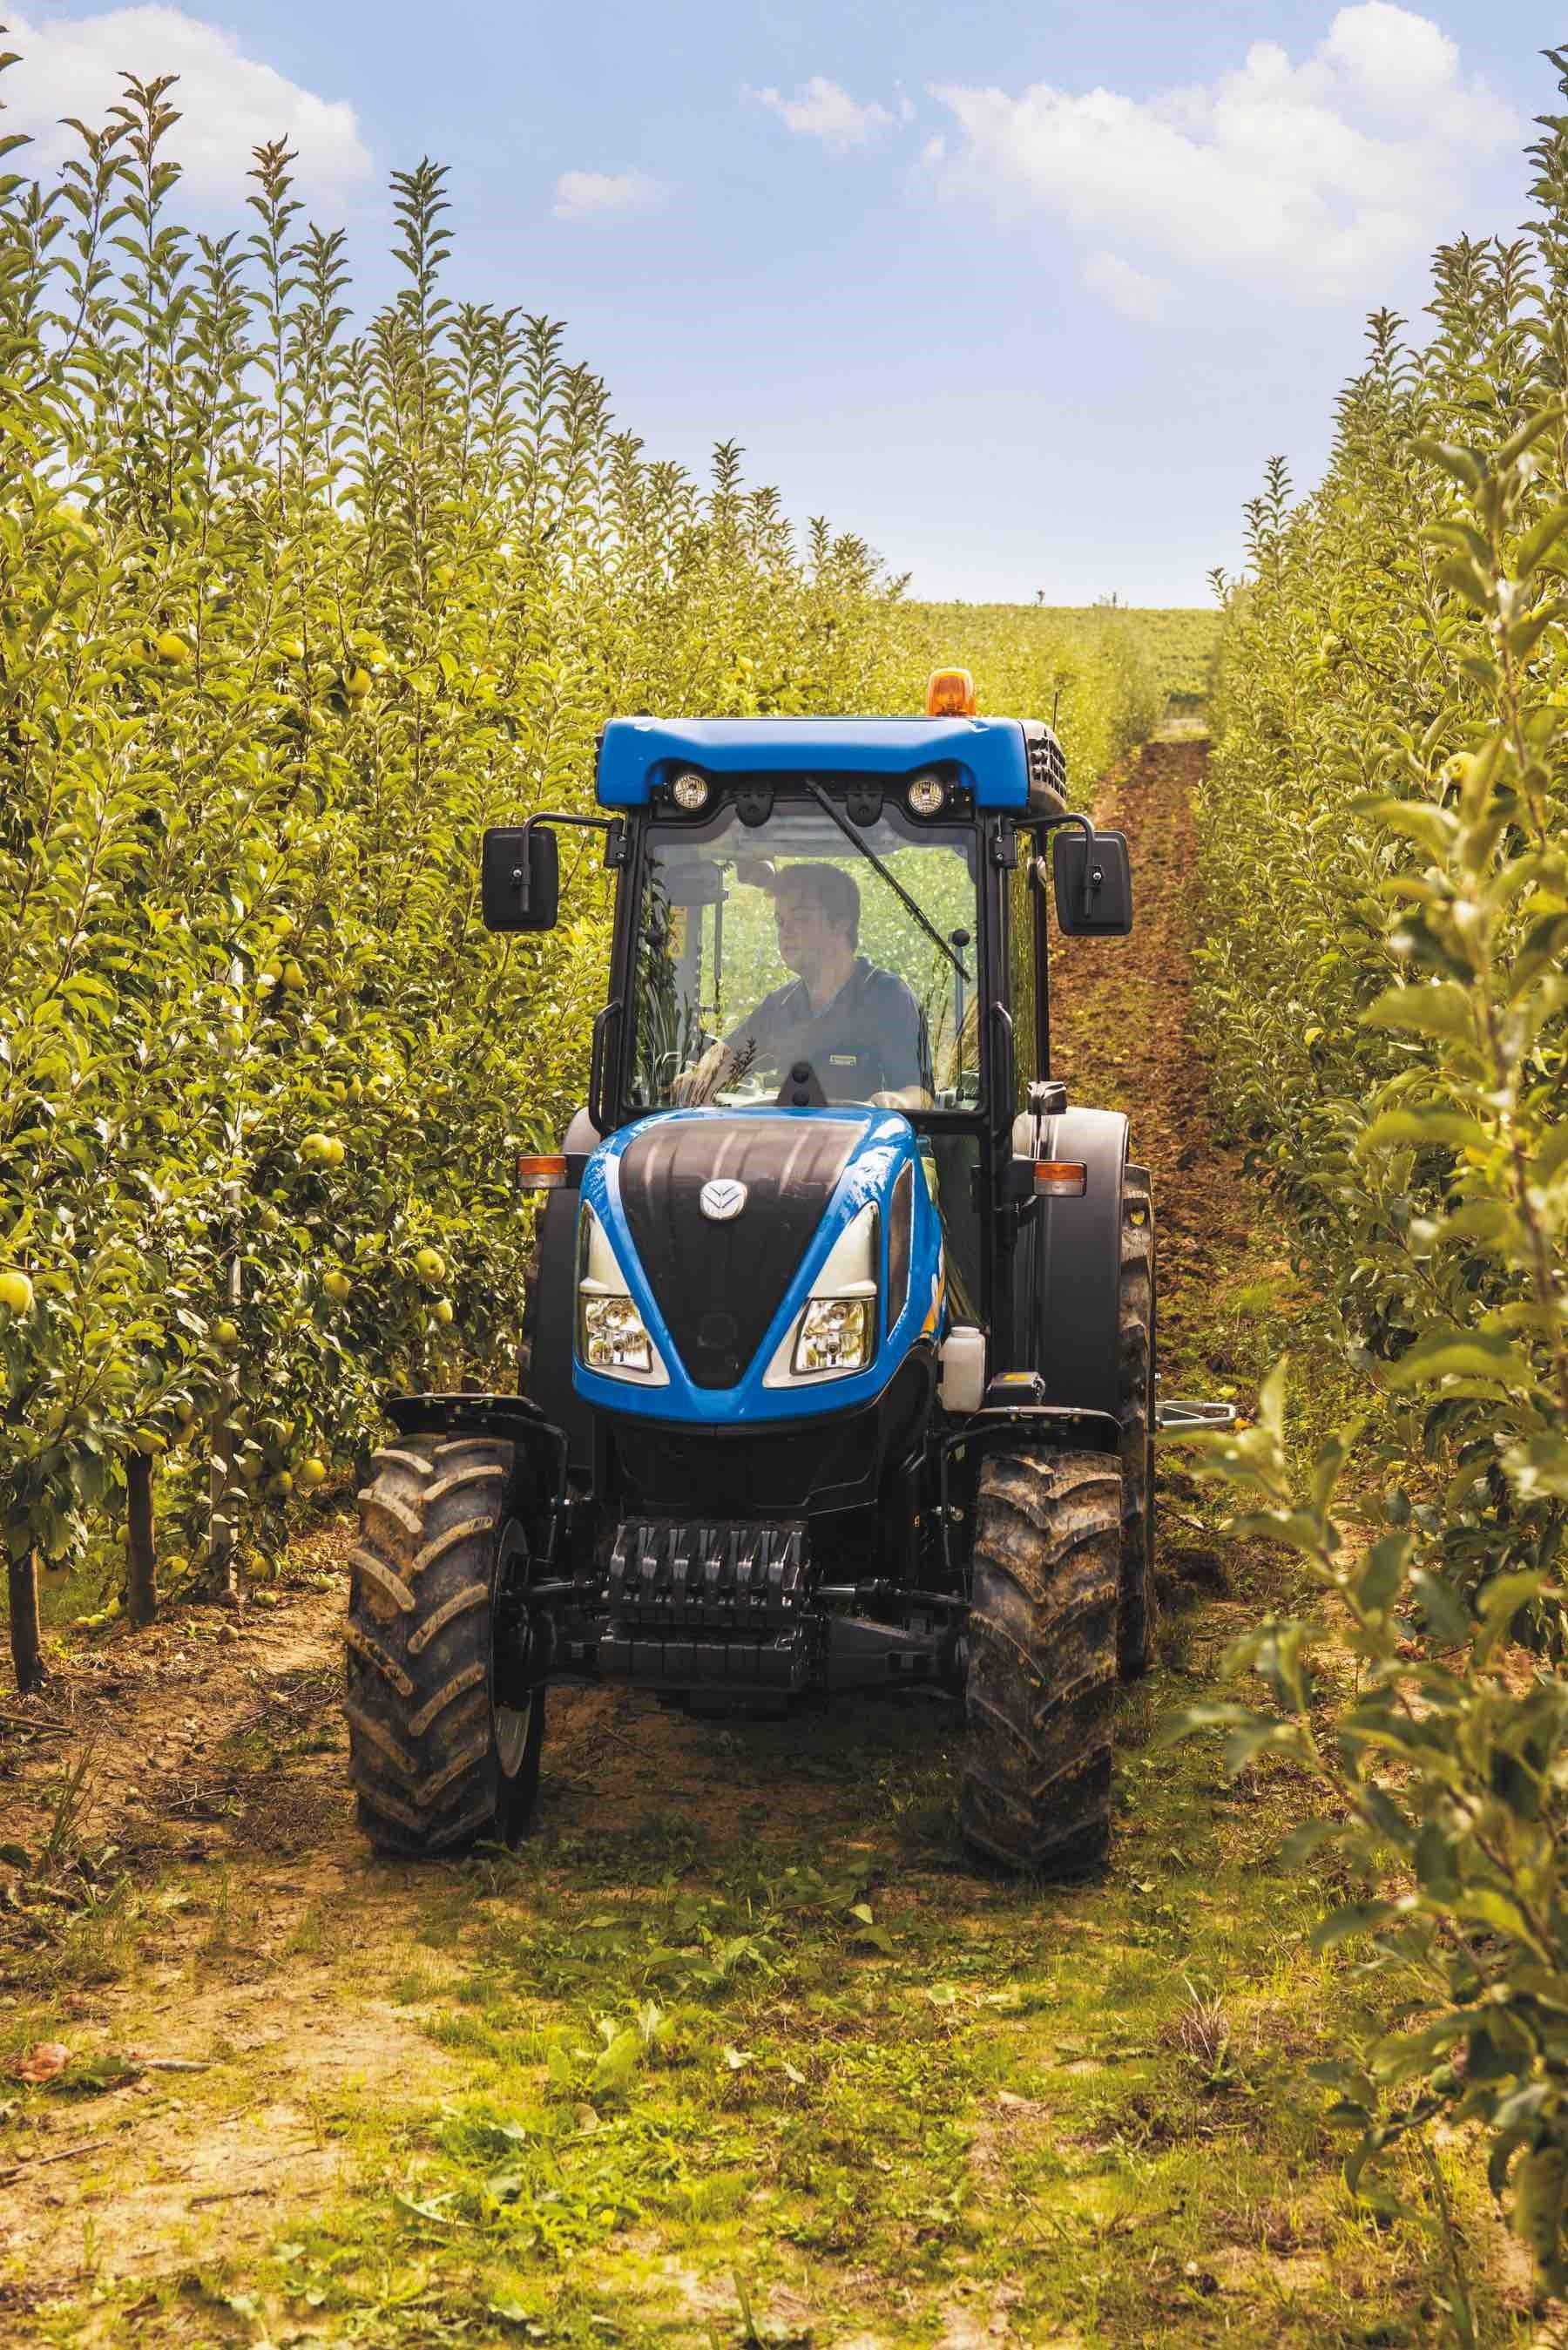 NEW HOLLAND'S latest range of fruit and orchard tractors includes its most powerful variant yet